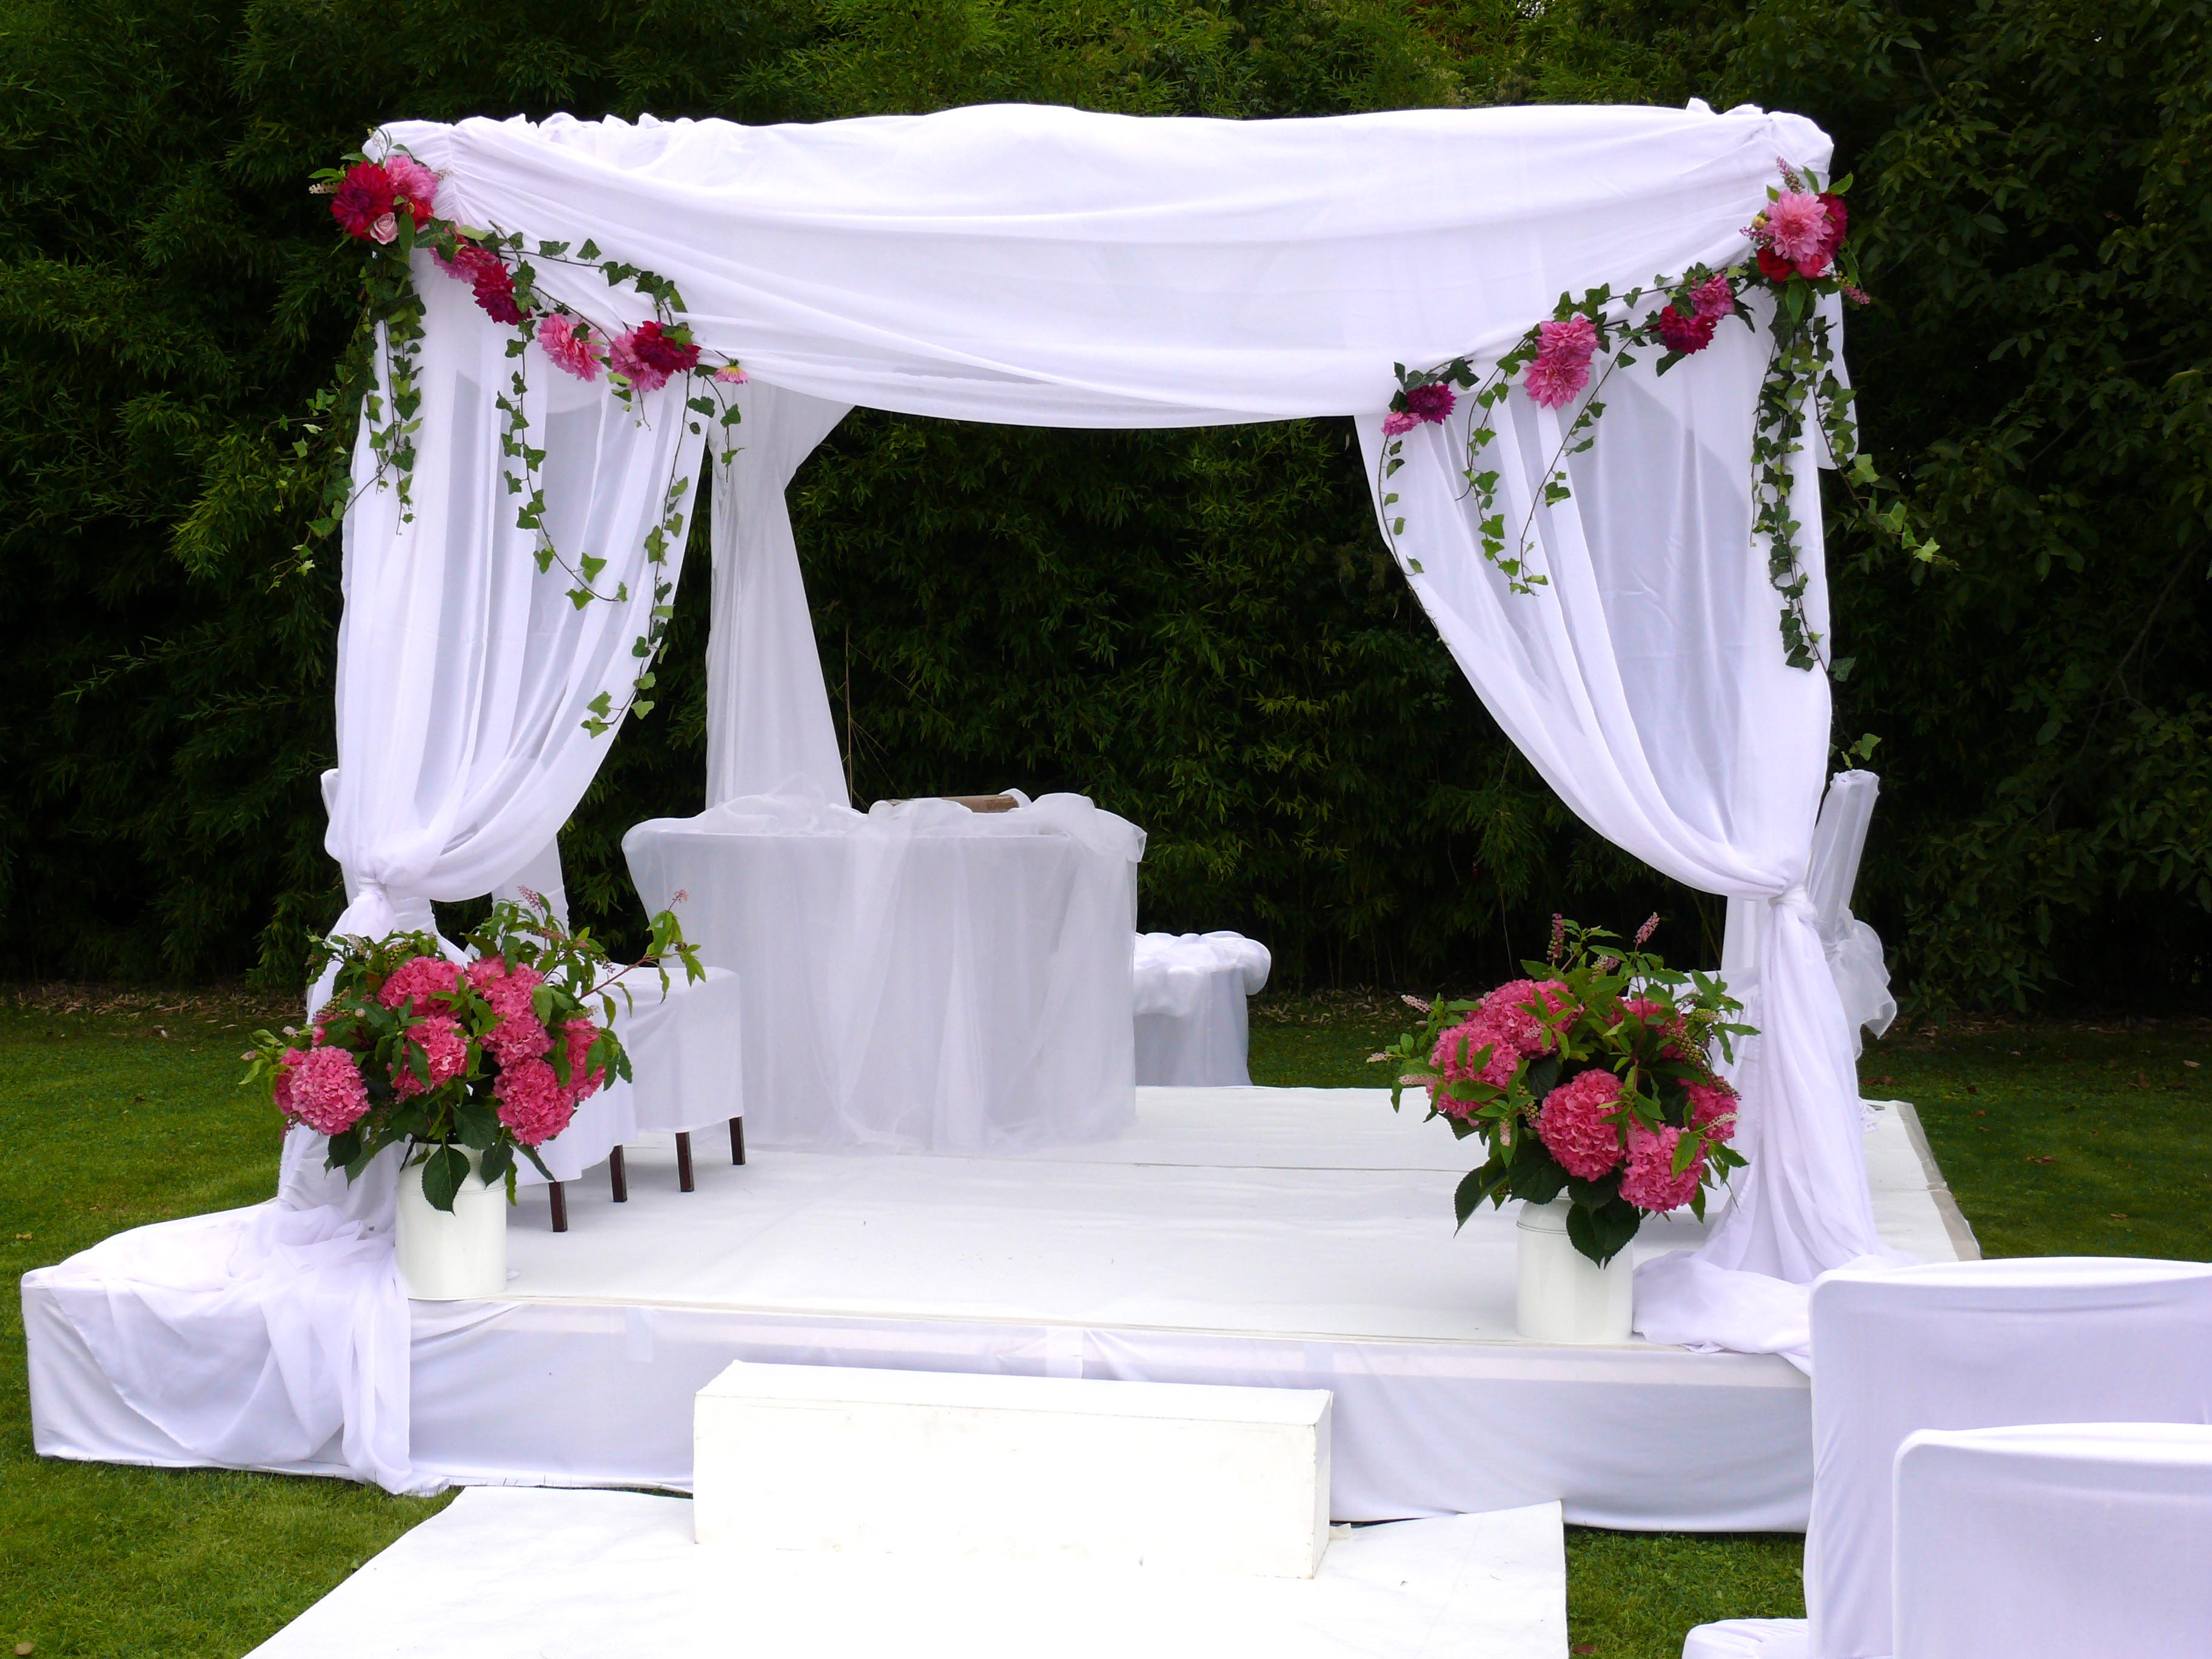 Mariage.com » Les Prestataires de Mariage » WEDDING PLANNERS » MY ...